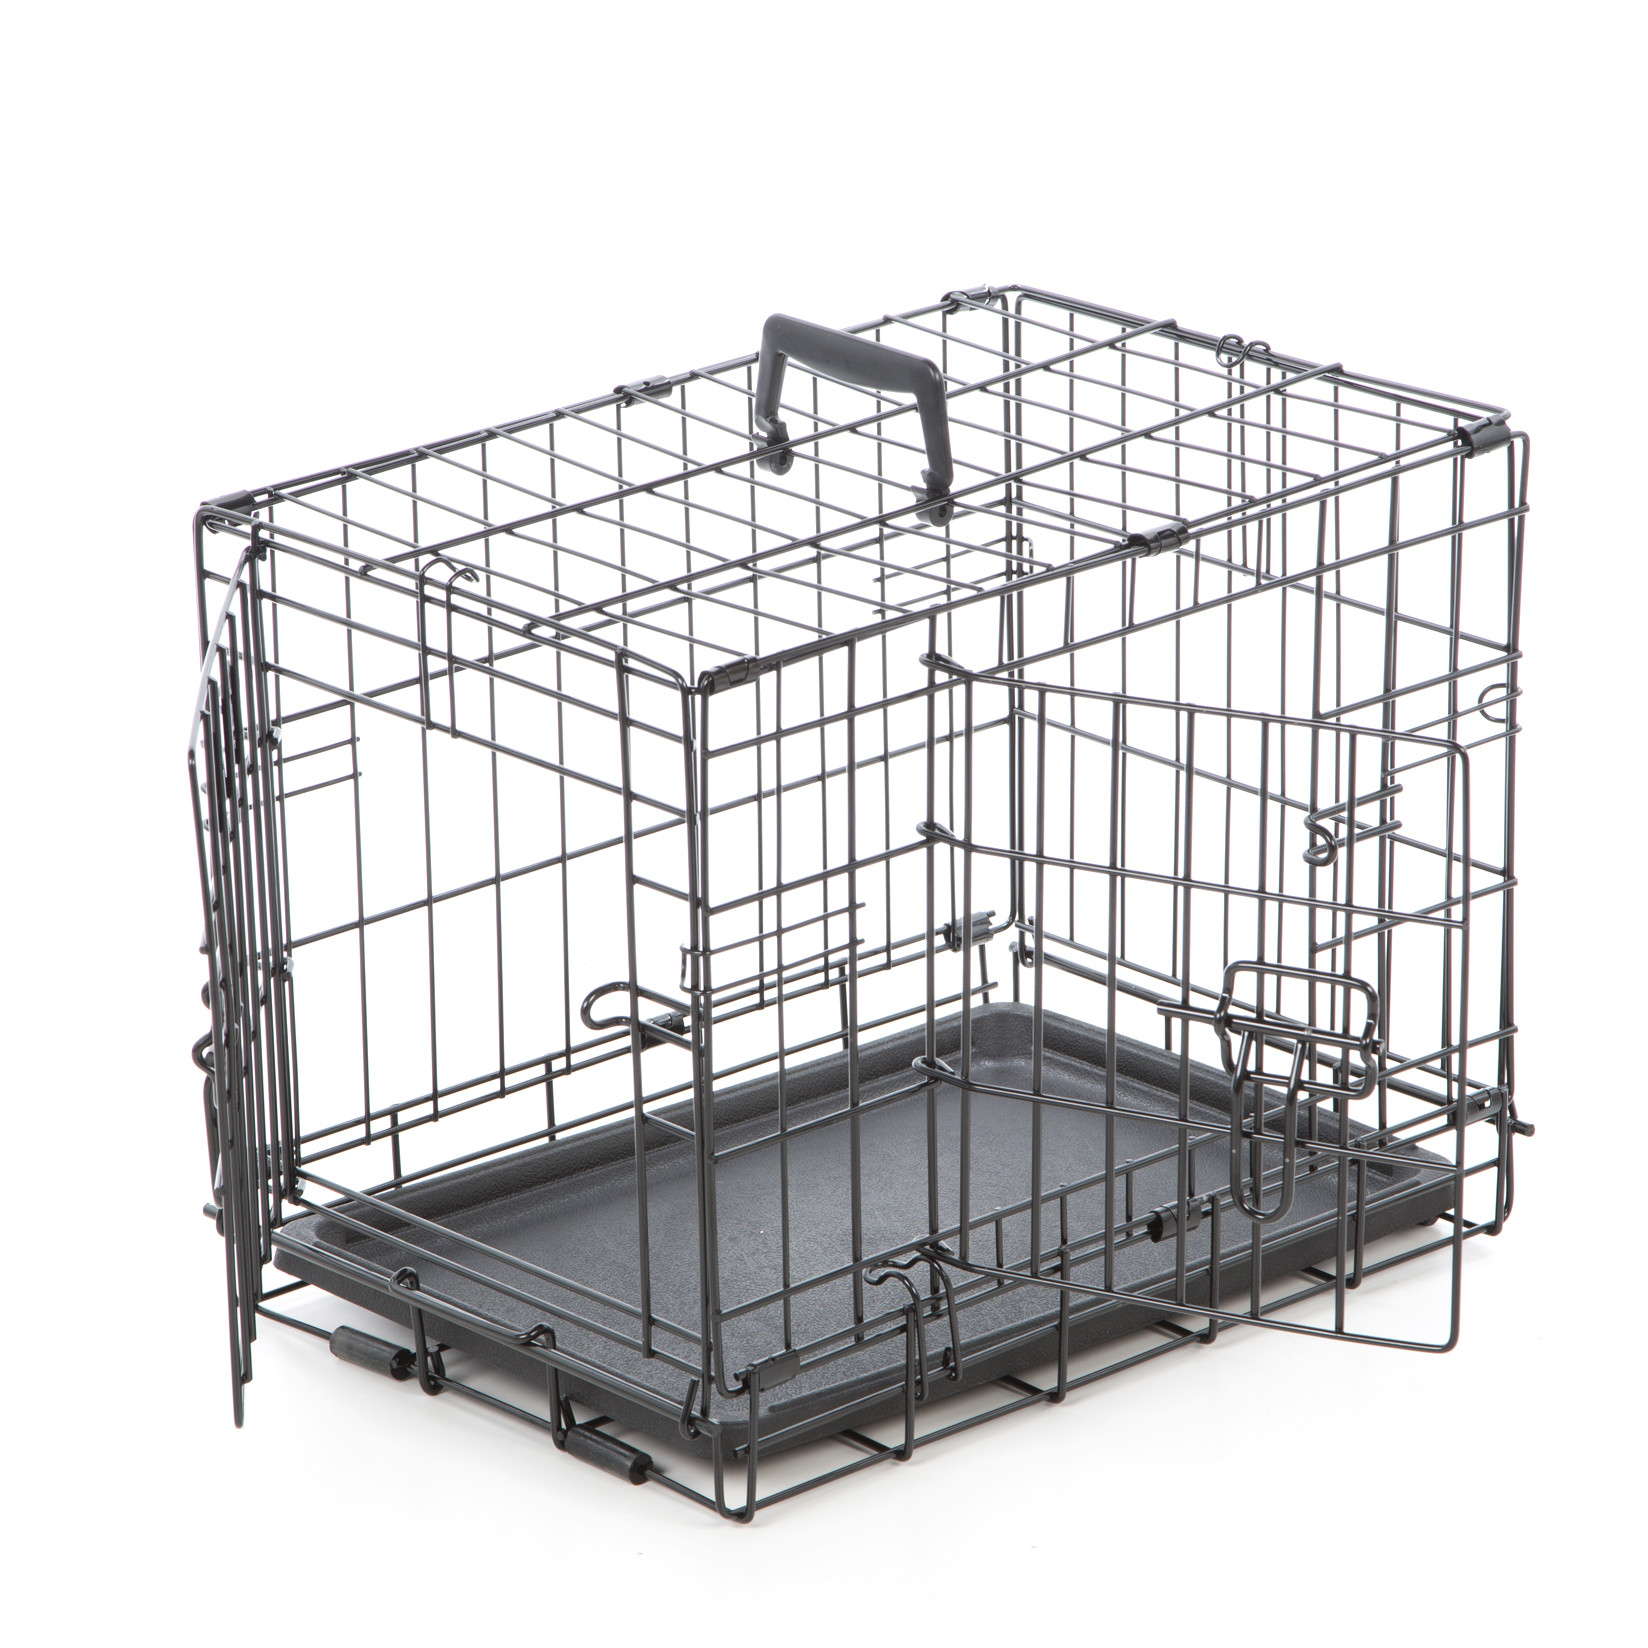 midwest metal products adjustable dog crate midwest dog crates - Midwest Crates